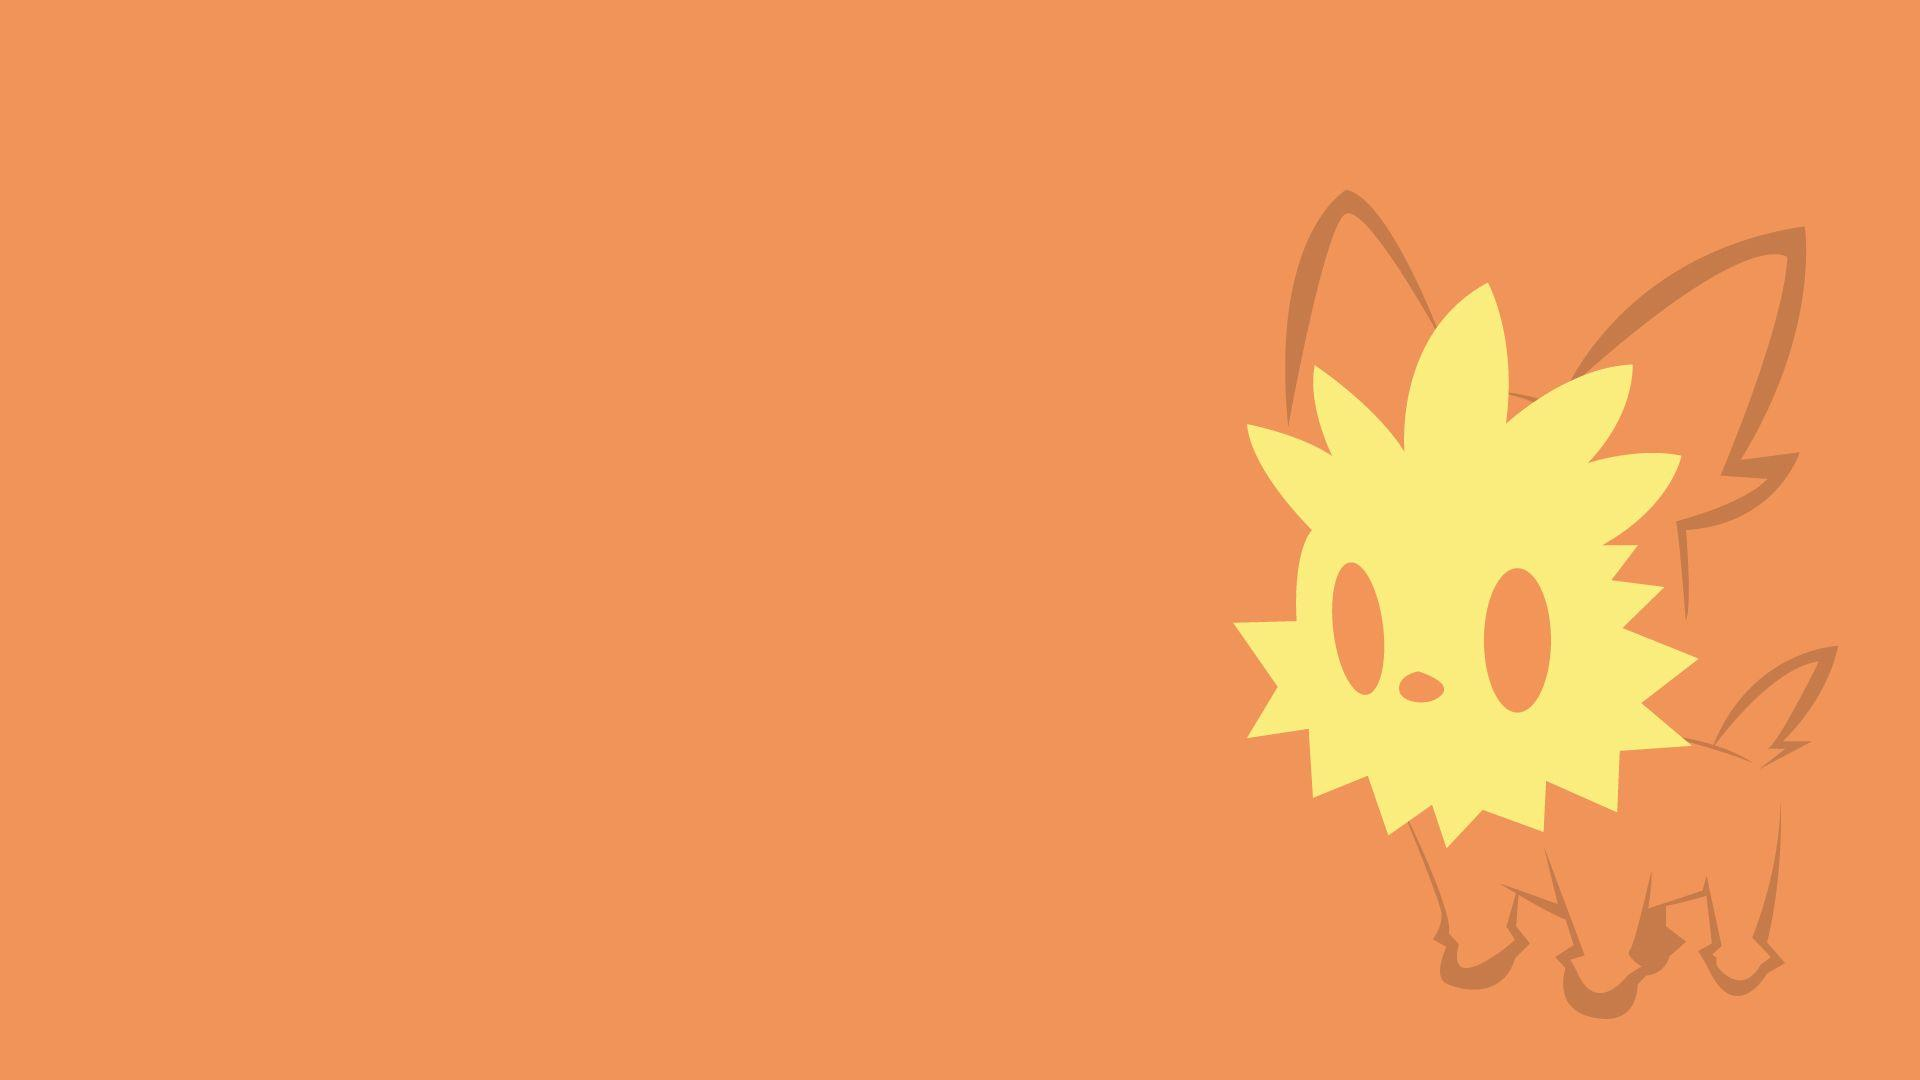 Lillipup Wallpapers 48415 1920x1080 px